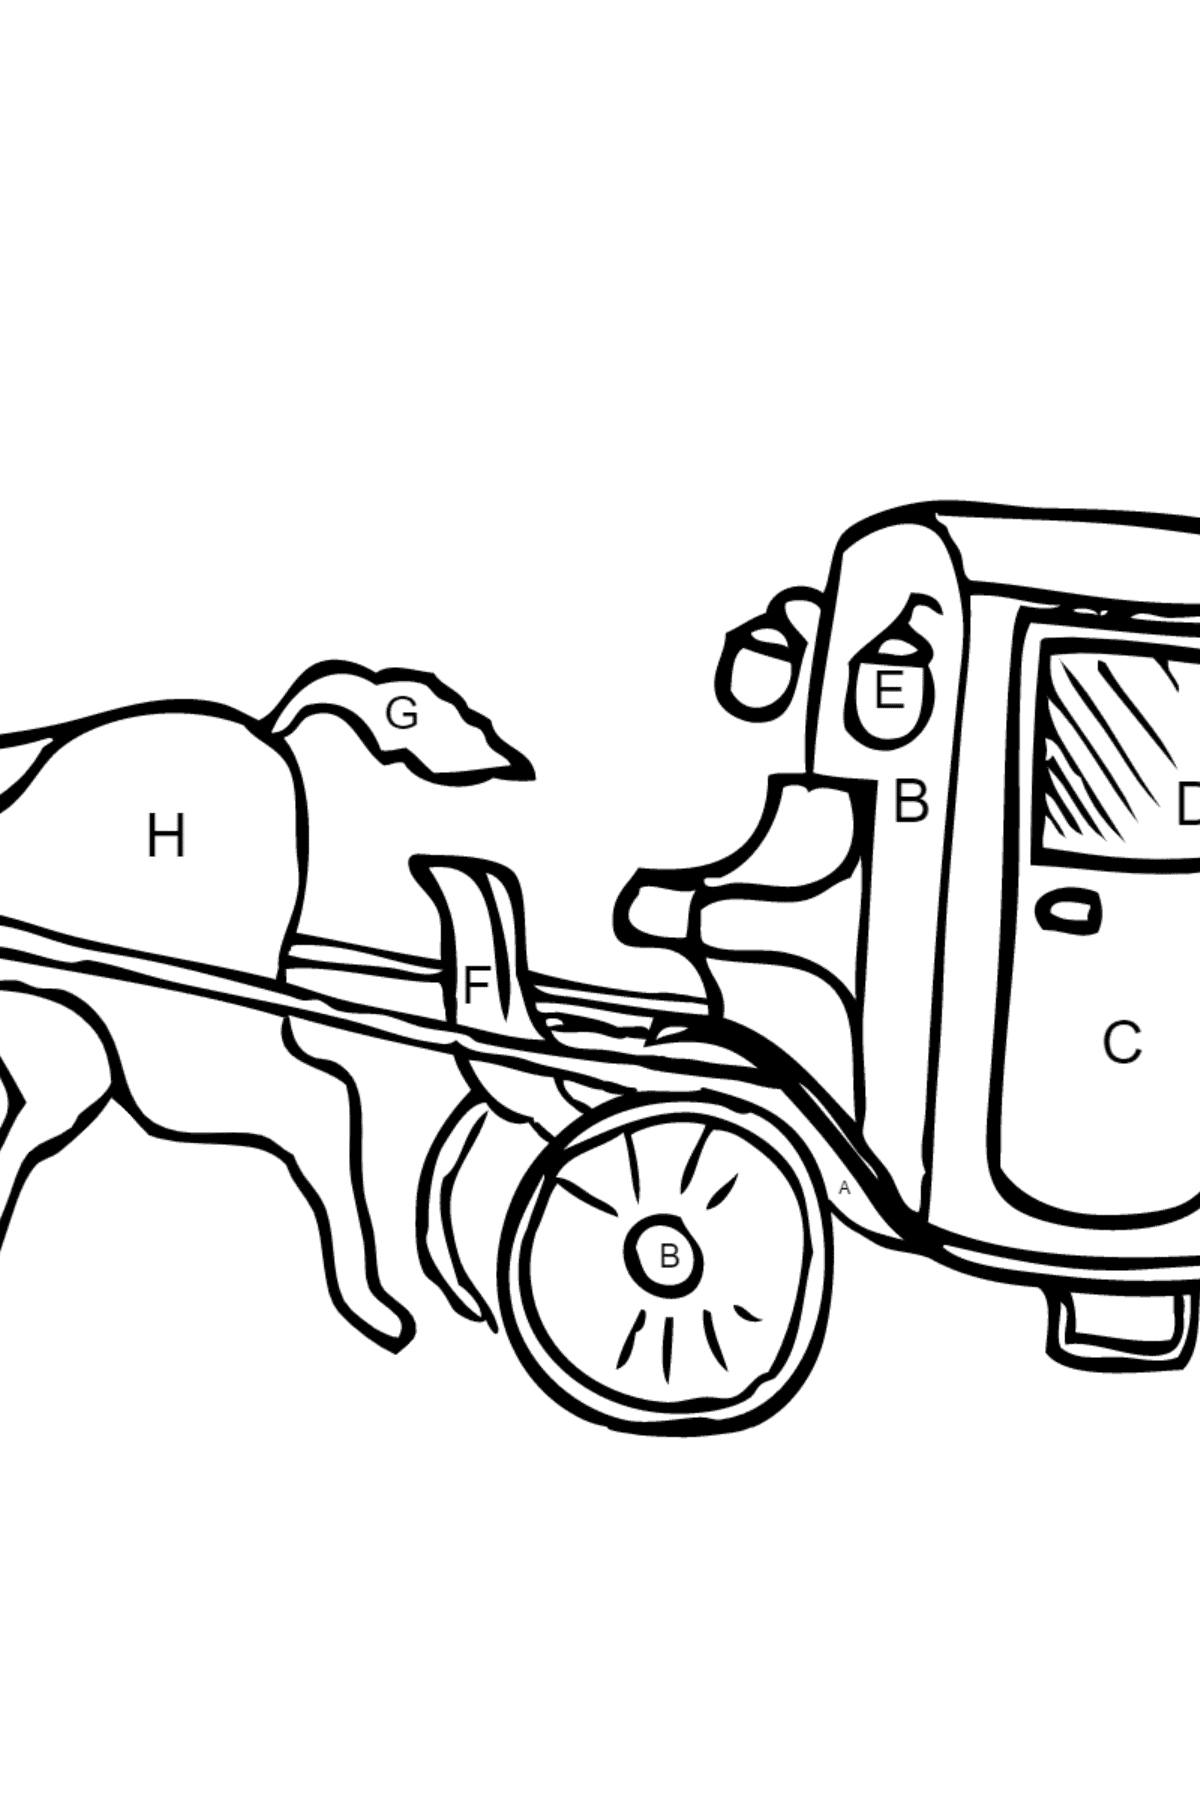 Coloring Page - A Cab - Coloring by Letters for Kids